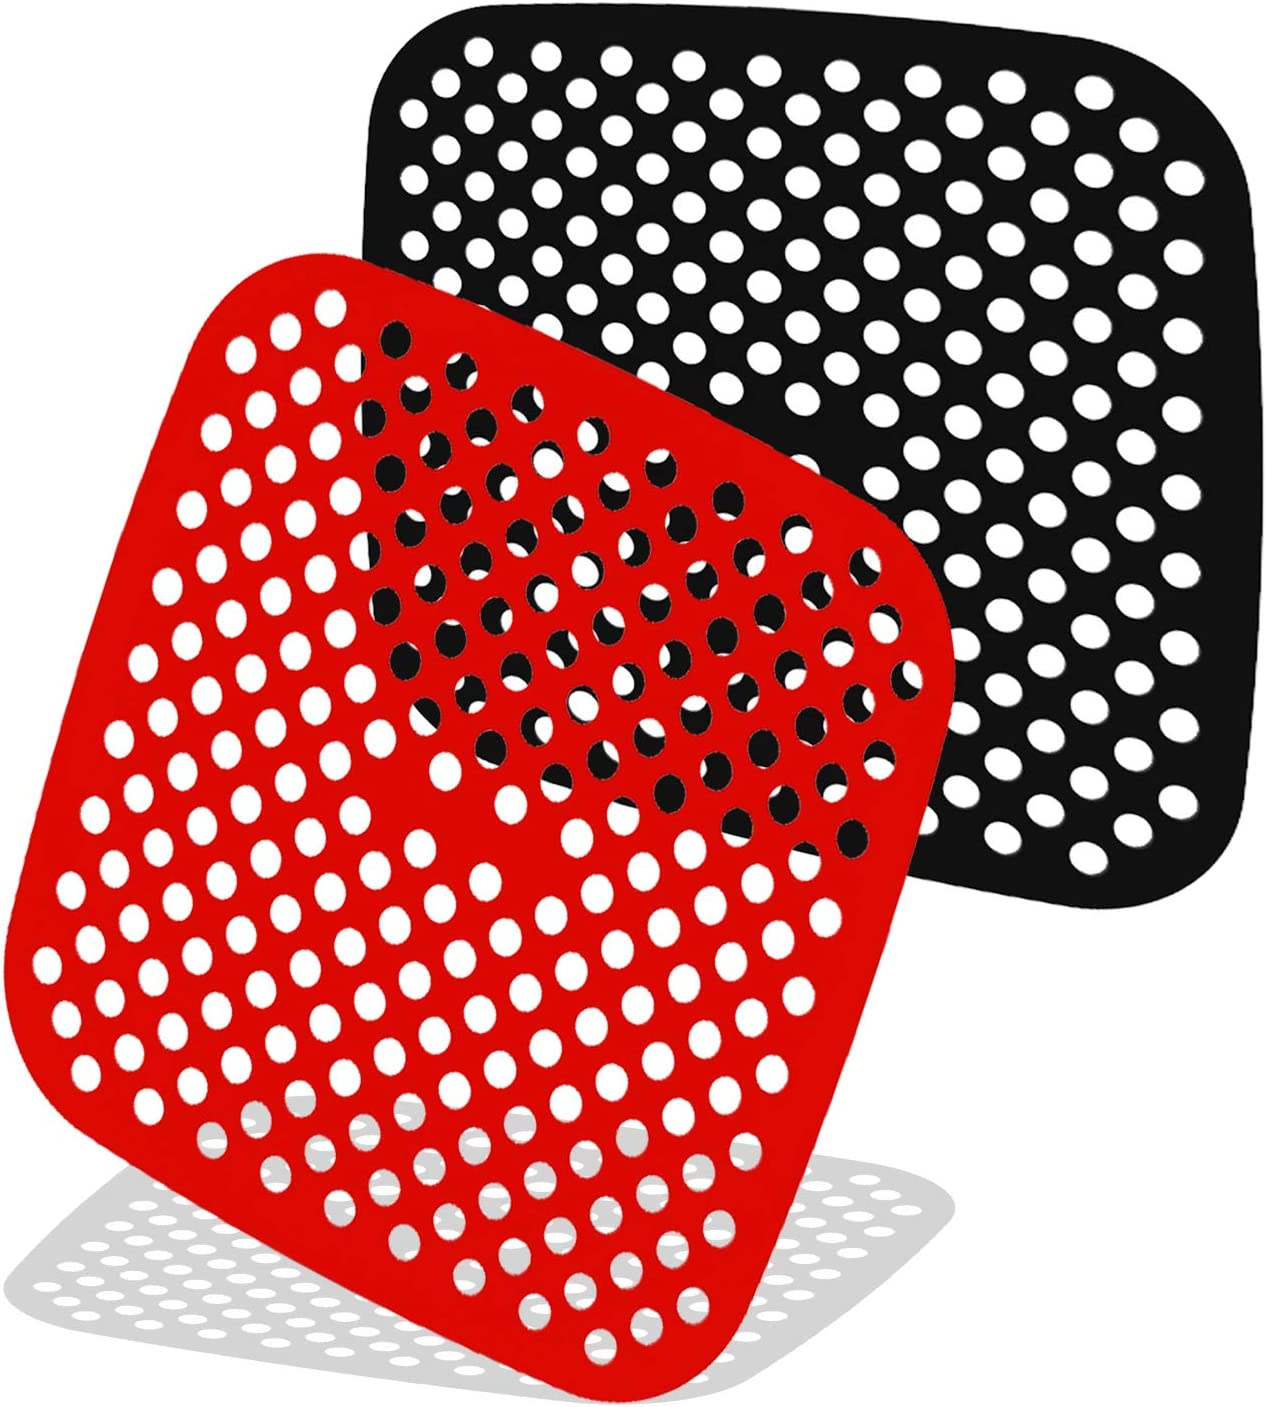 7.5 Inches Reusable Air Fryer Liners, 2Pcs Non-Stick Square Silicone Air Fryer Mats, Air Fryer Accessories Compatible With Philips, Cozyna, Secura, Nuwave, Power XL, Chefman, Gowise Usa, Cosori